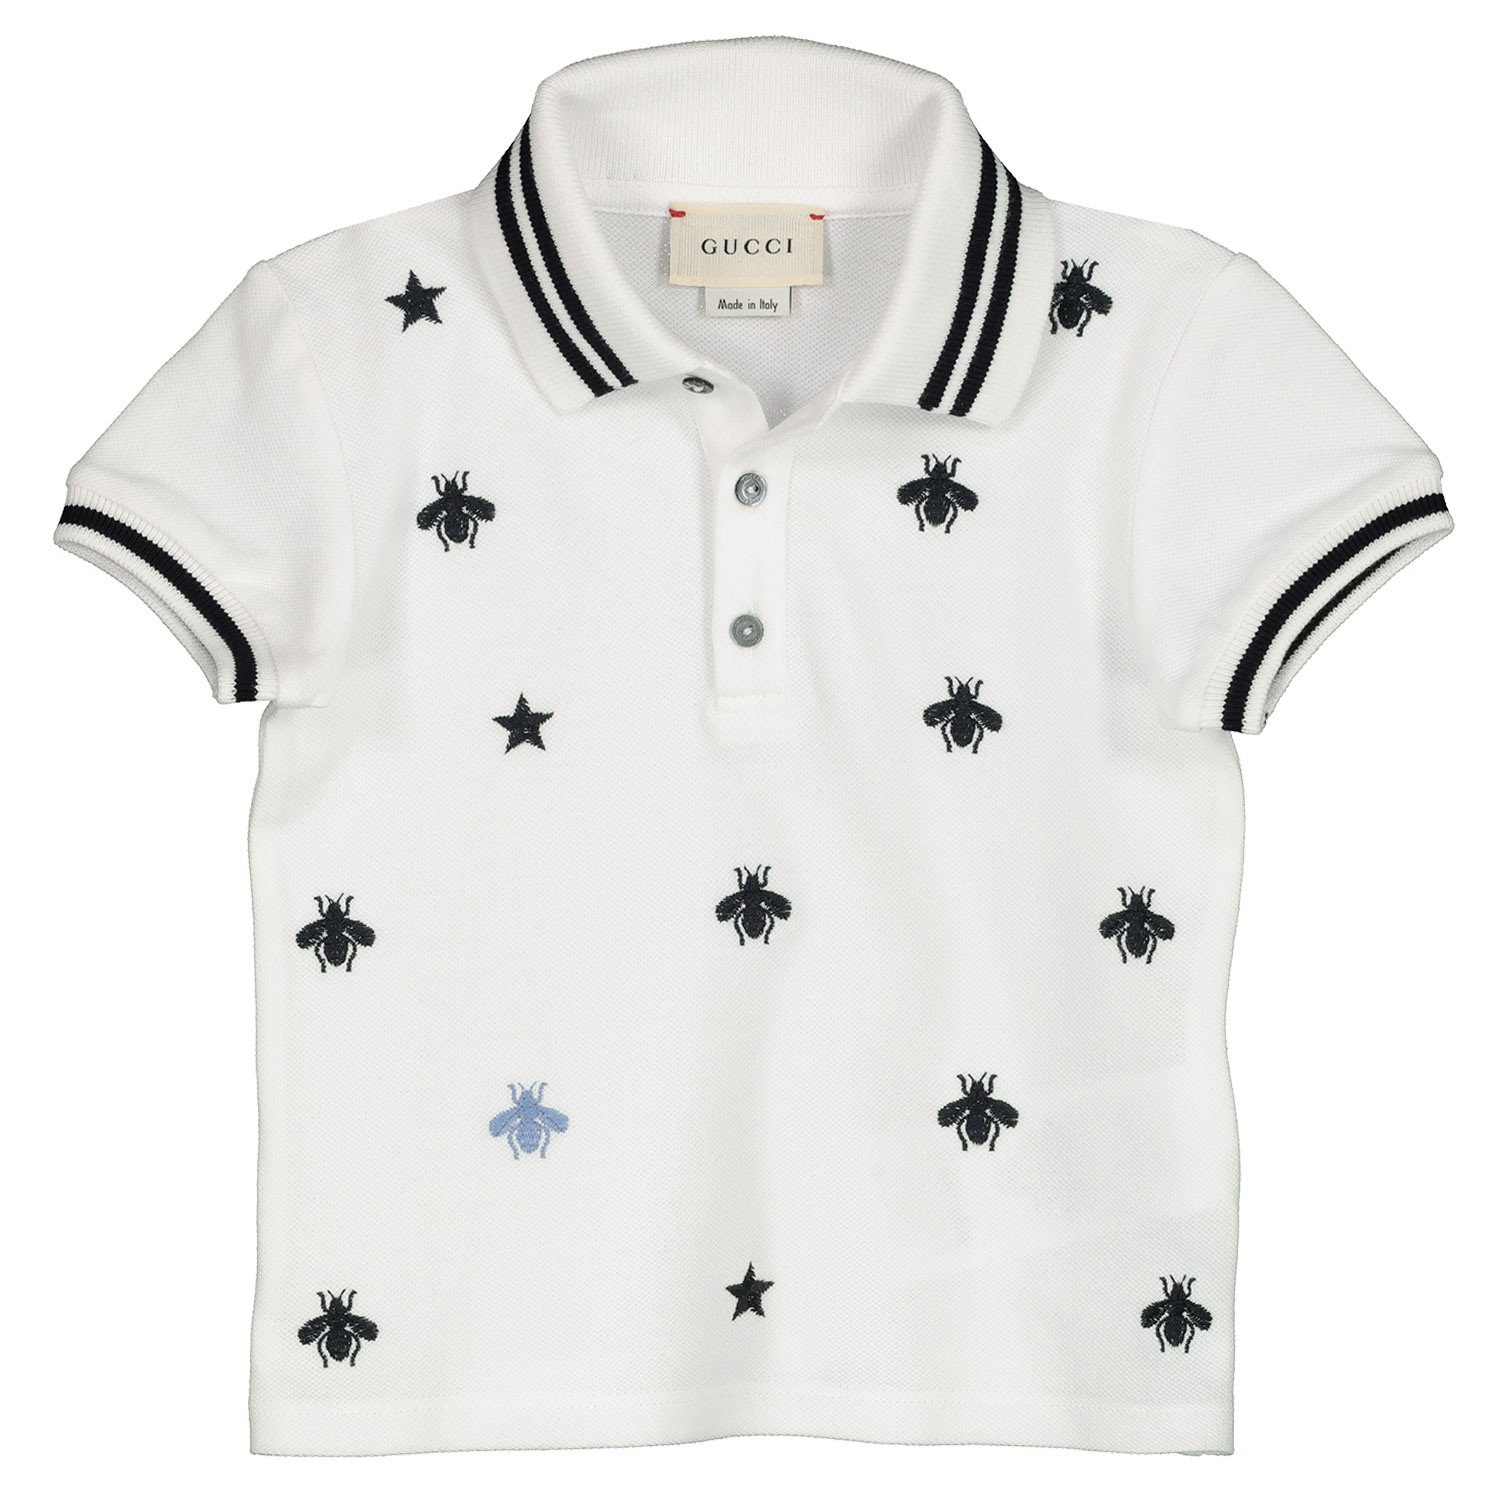 Afbeelding van Gucci 540790 baby polo wit